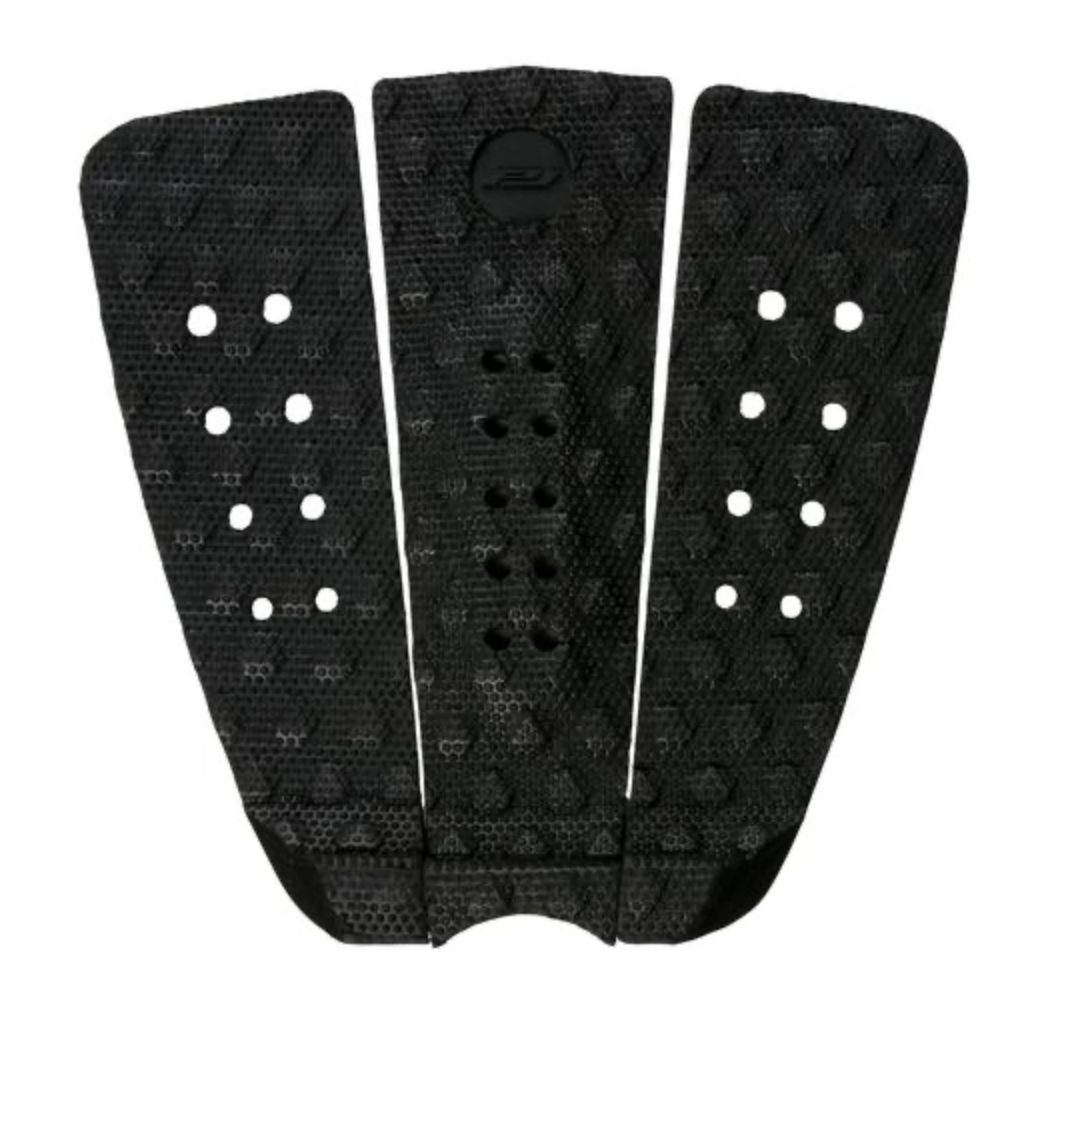 Timmy Reyes 1 Grip Pad Signature Series